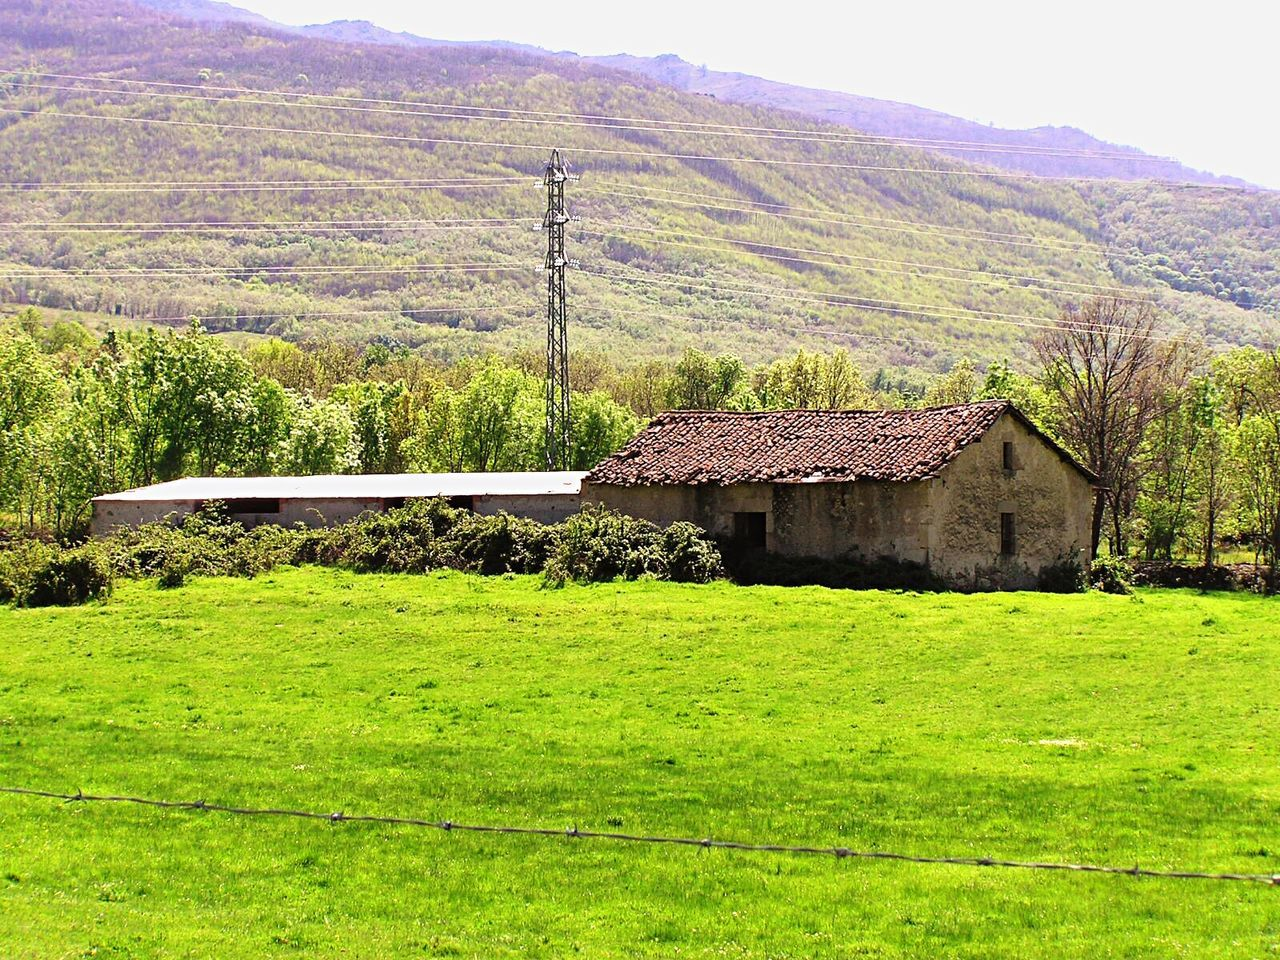 architecture, built structure, green color, no people, house, landscape, building exterior, mountain, grass, field, day, agriculture, outdoors, tranquil scene, scenics, tranquility, nature, beauty in nature, roof, tree